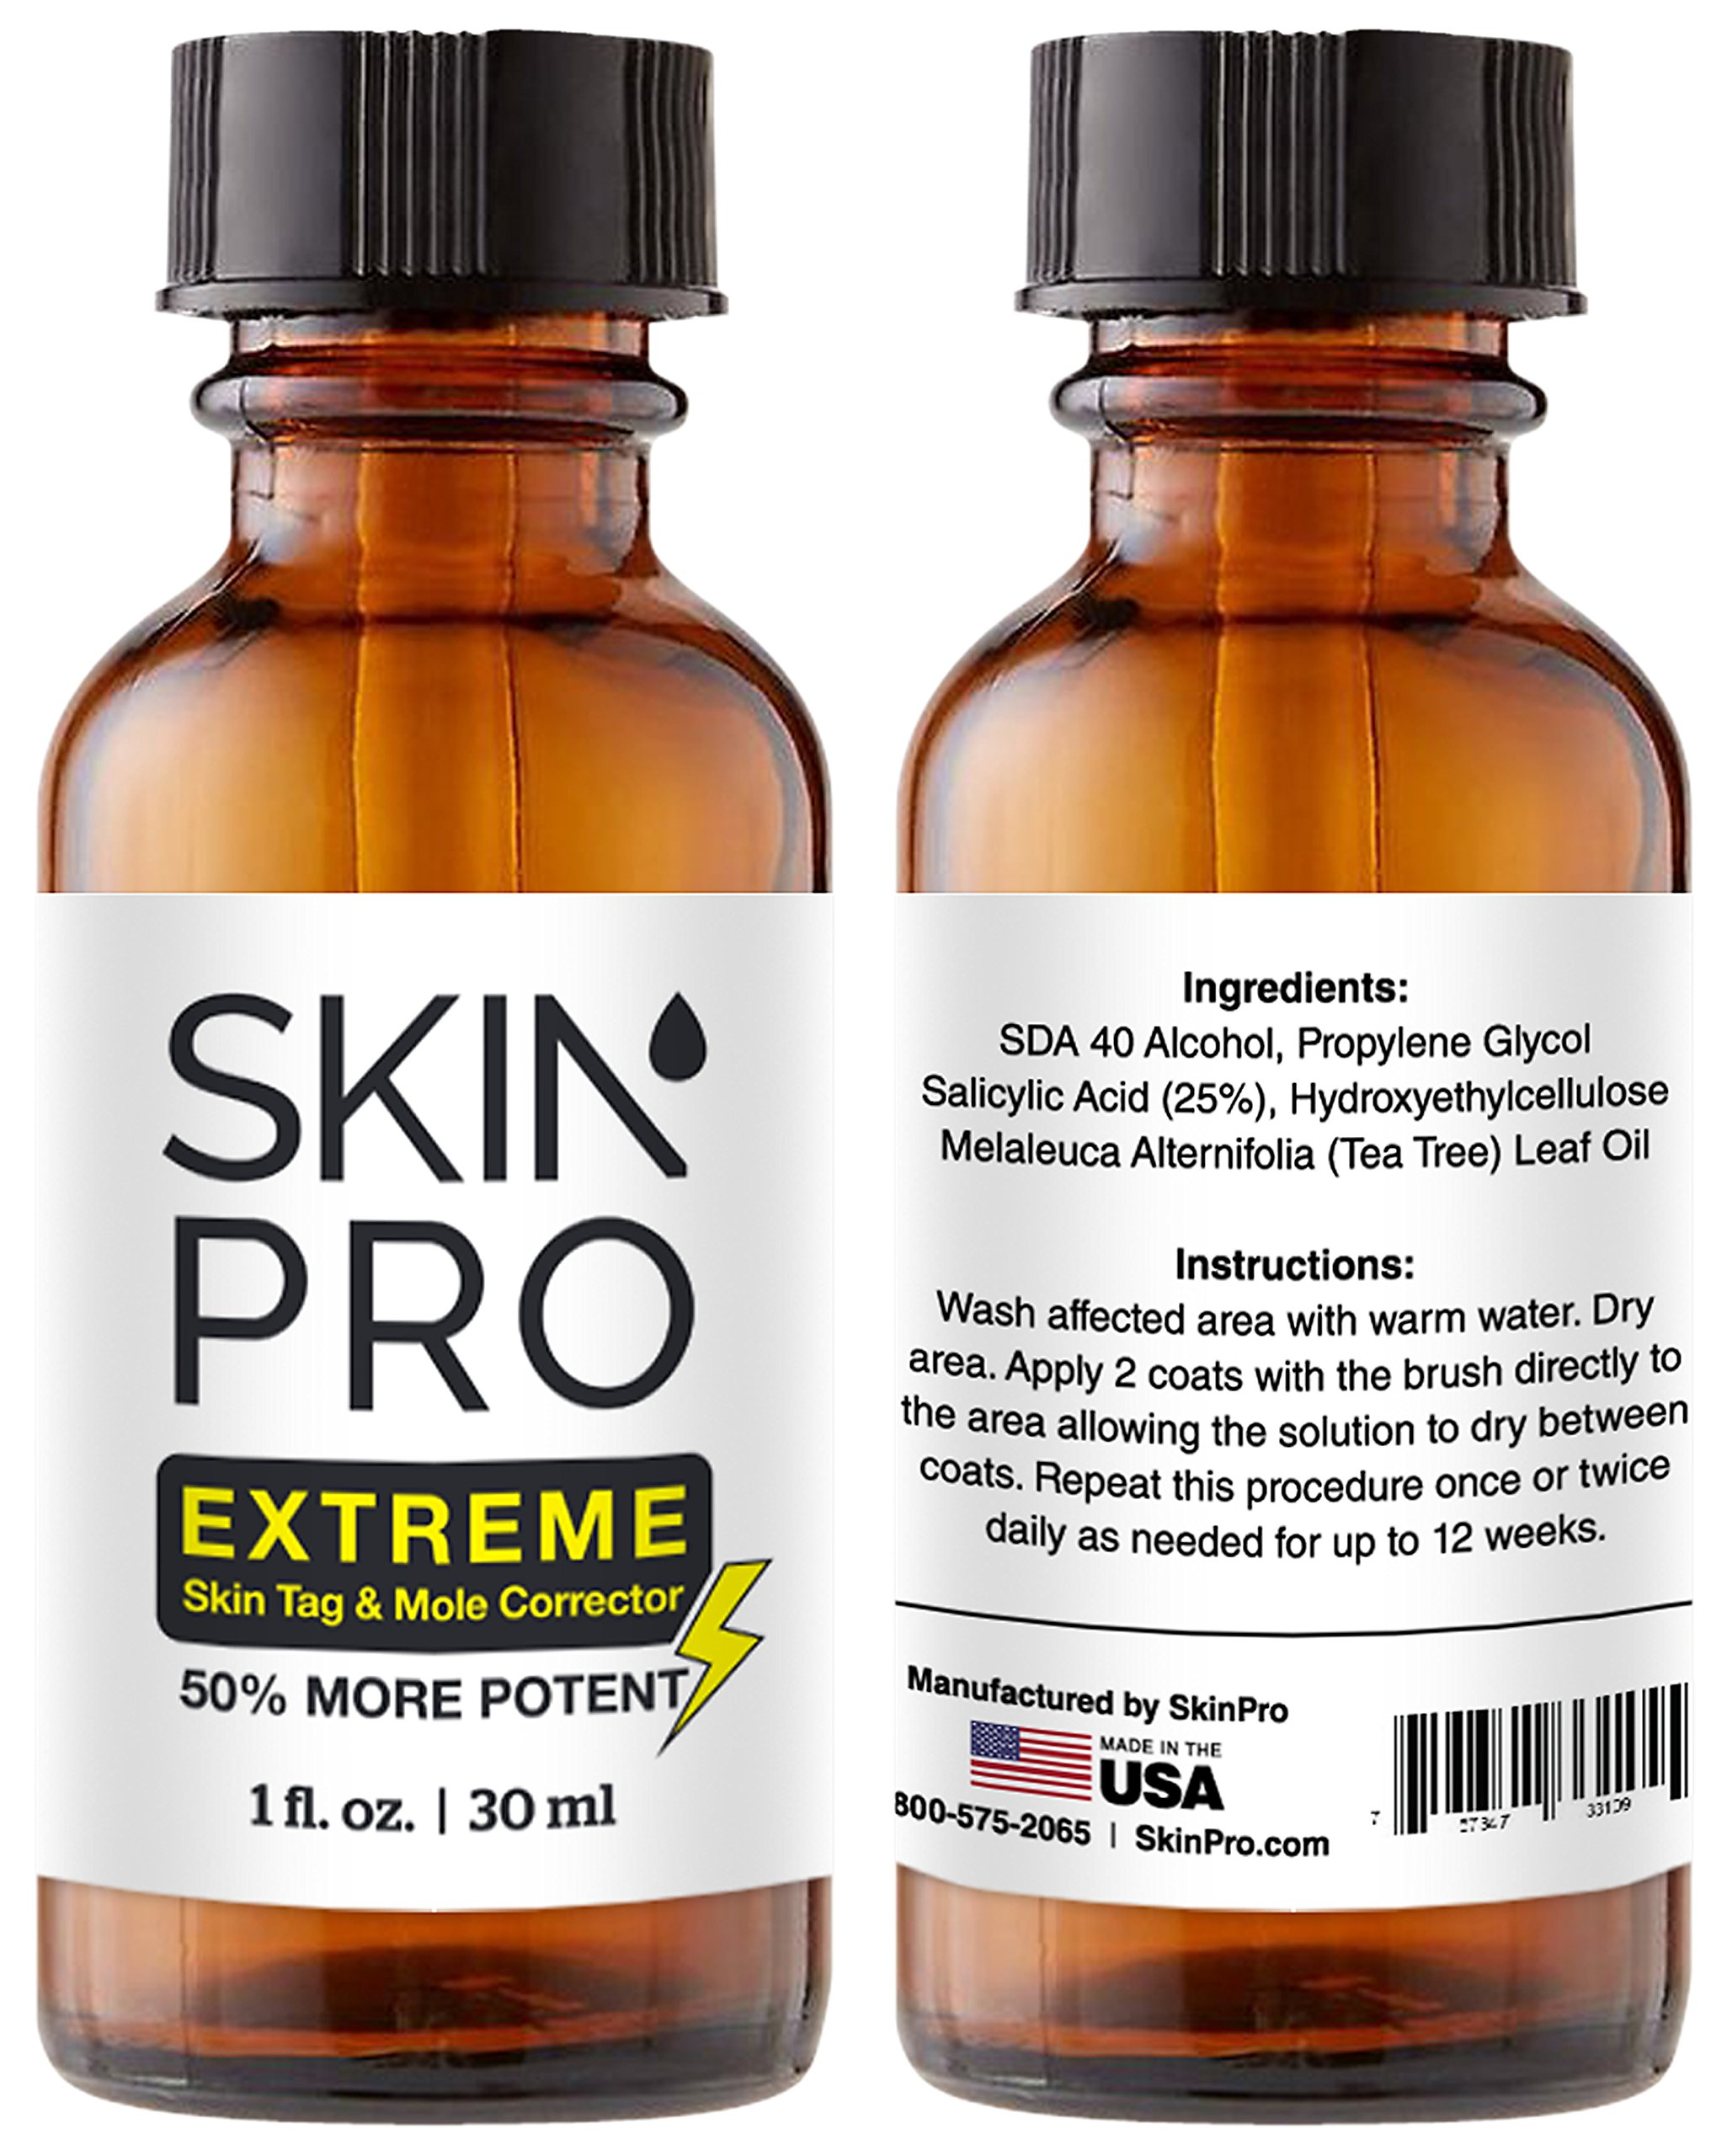 SkinPro EXTREME Skin Tag Remover & Mole Corrector | Fast Acting Physician Level 3 Formula | Industry Leading 25% Pure Salicylic Acid Concentration